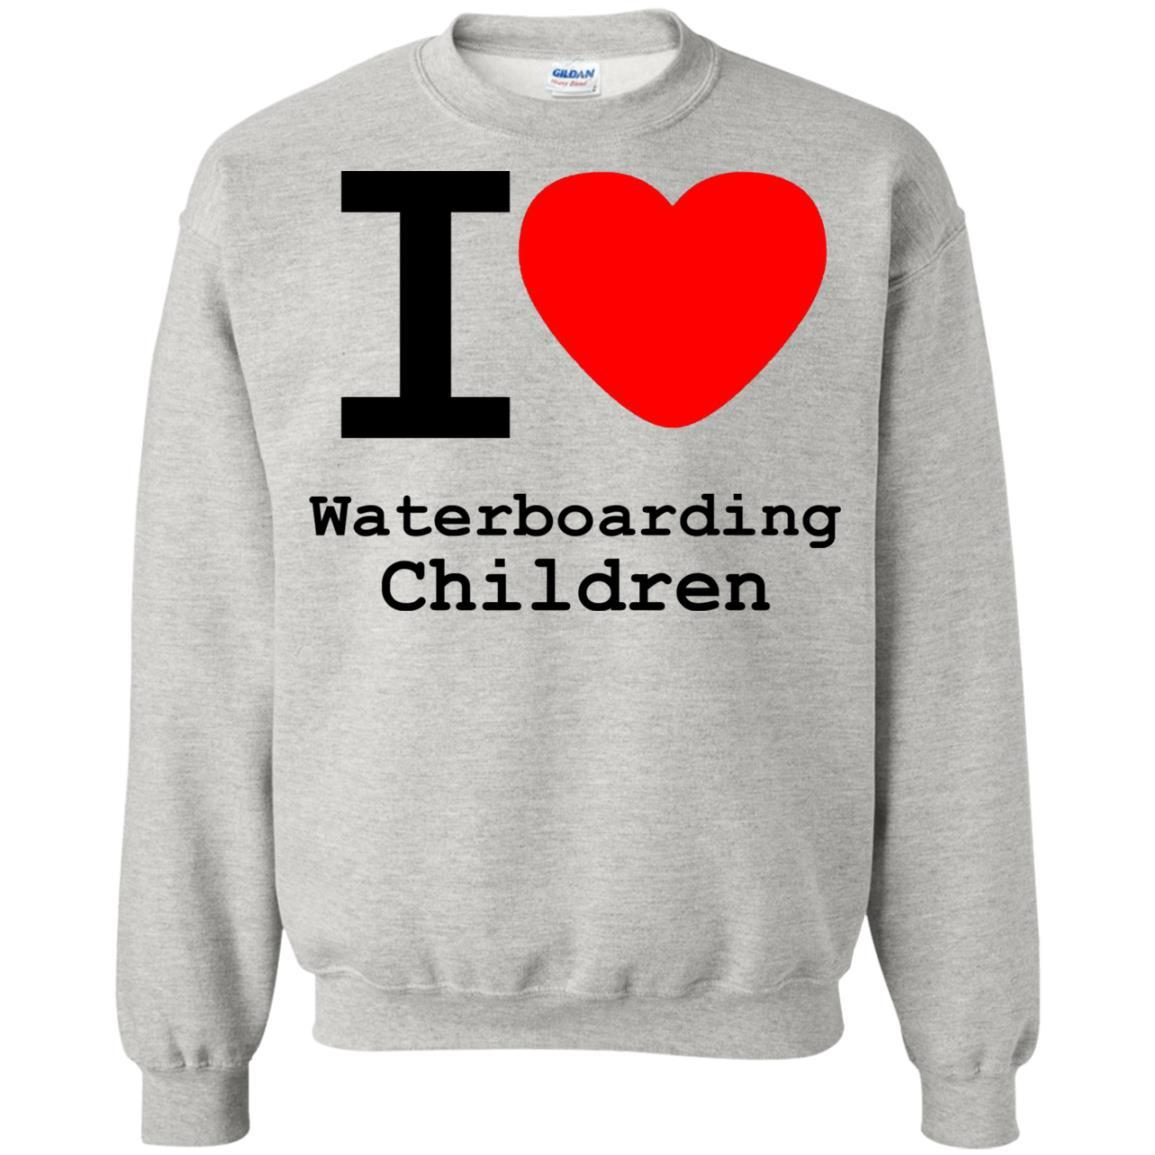 I love Waterboarding Children - Crewneck Pullover Sweatshirt Ash / 5XL